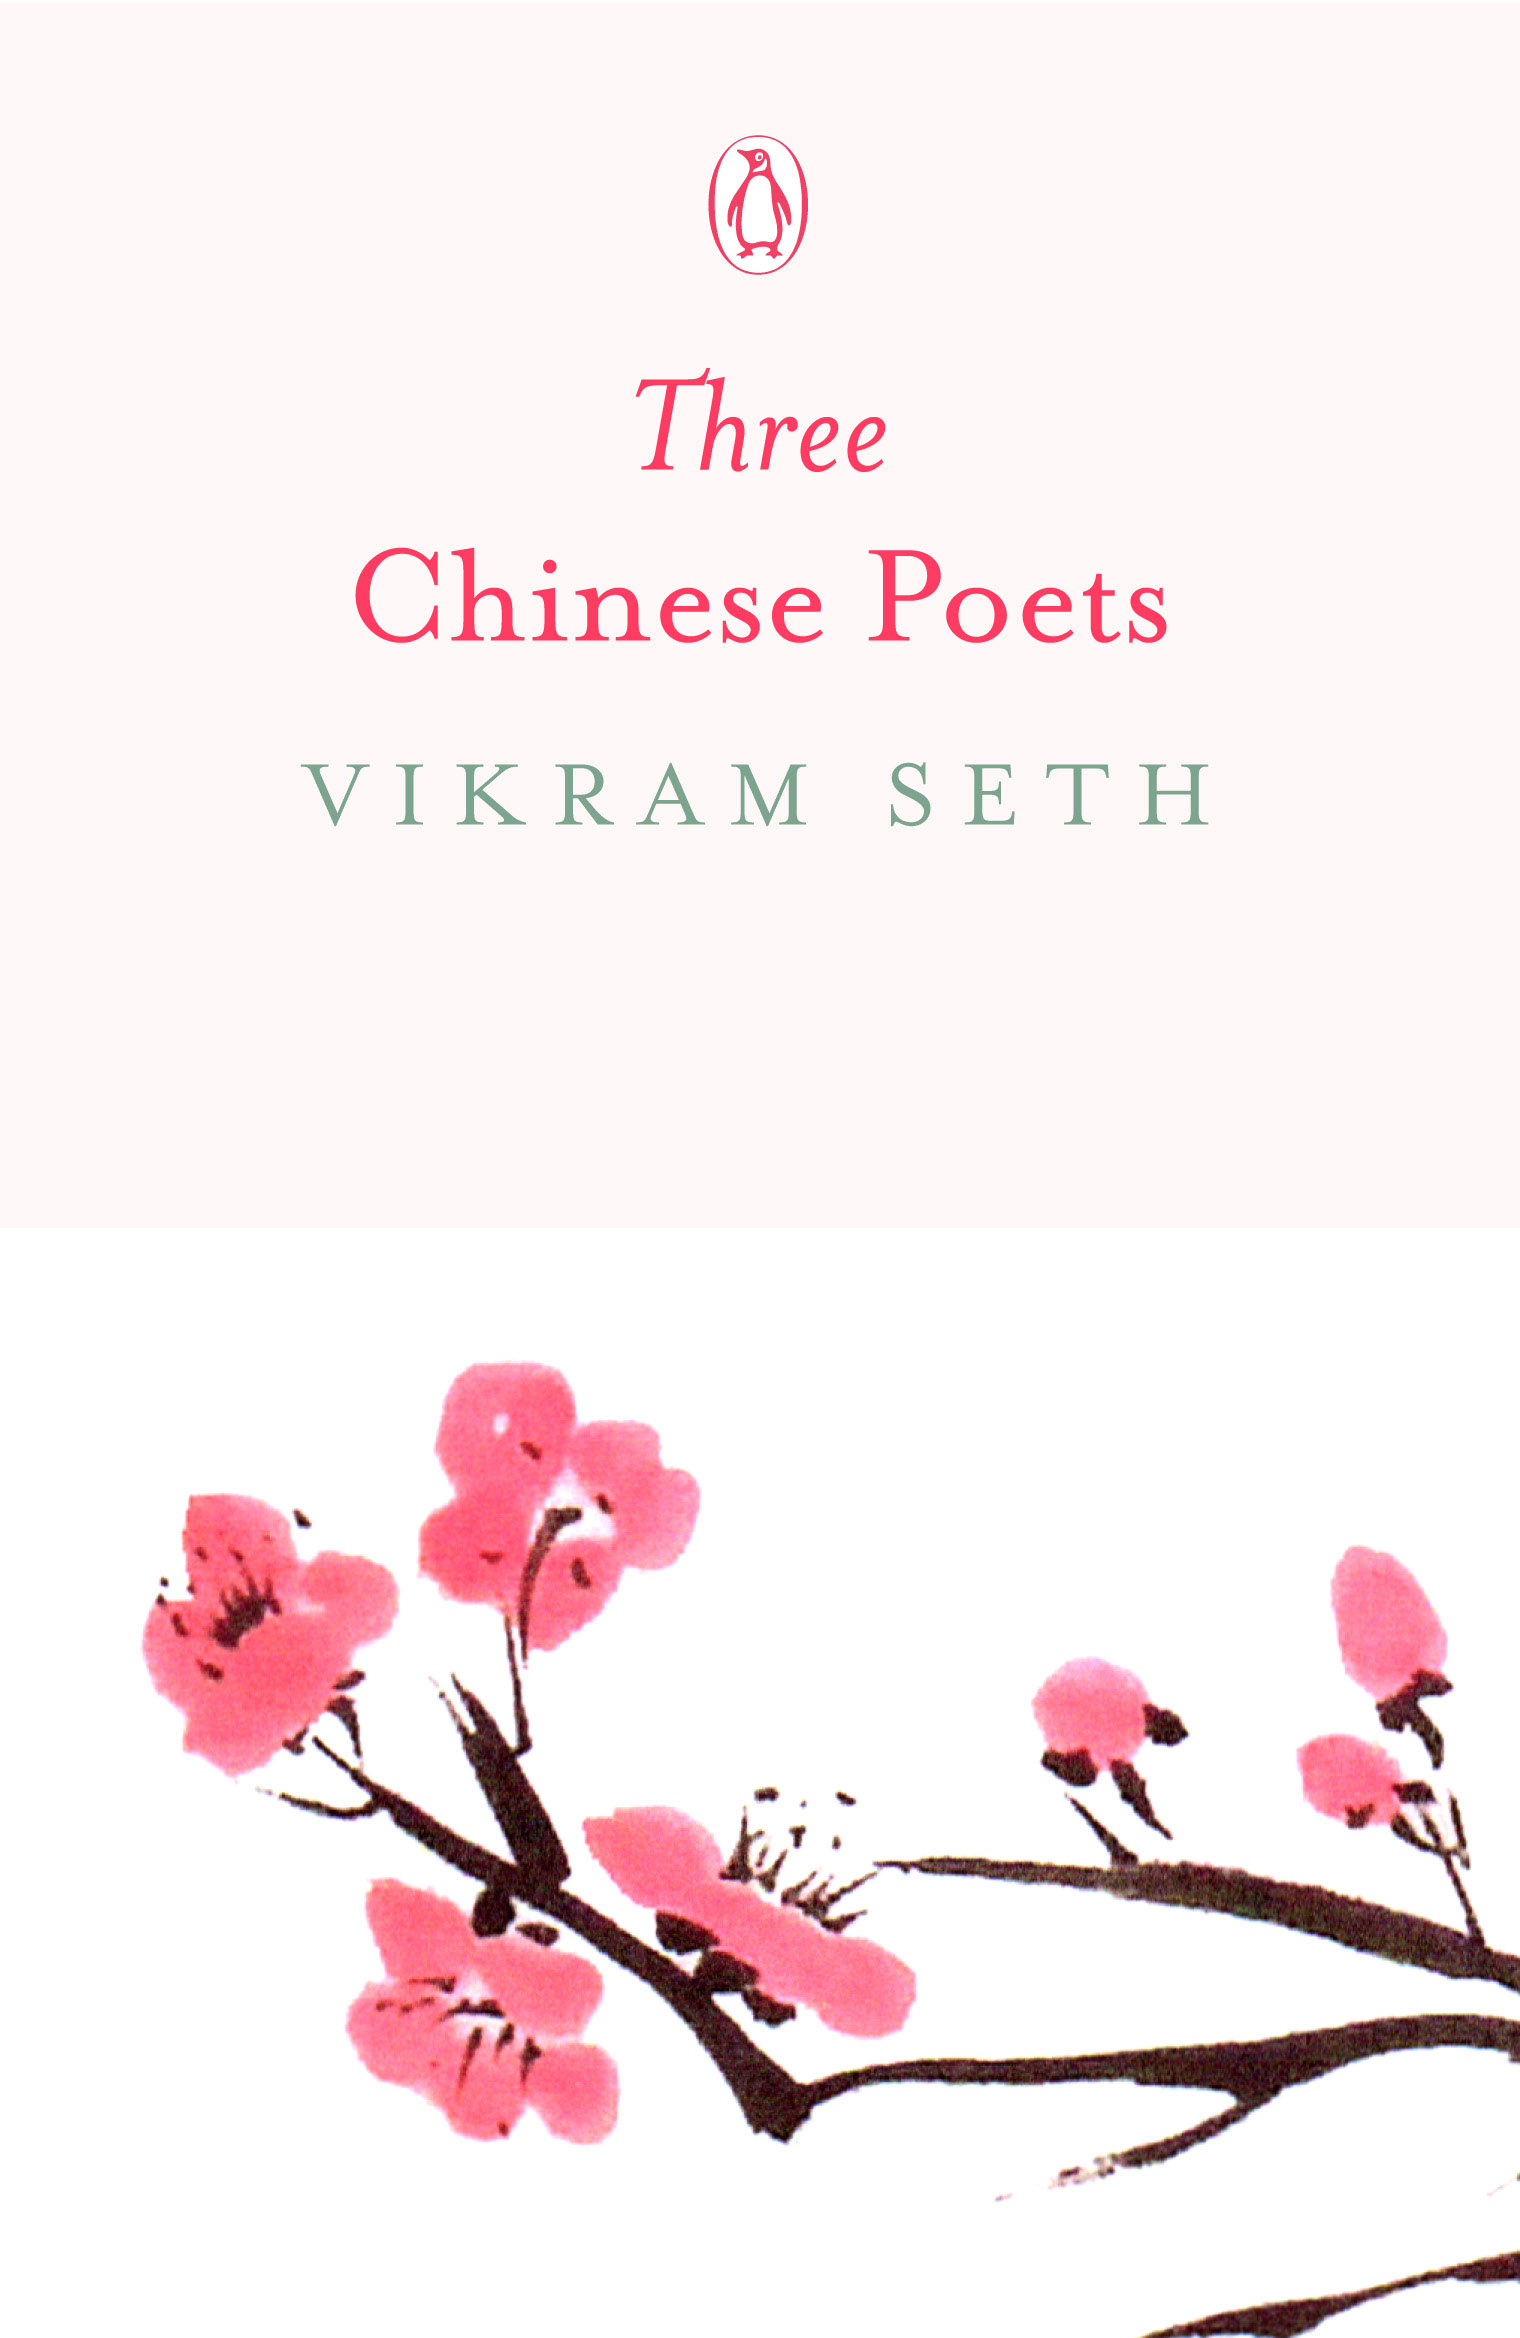 Three Chinese Poets.jpg